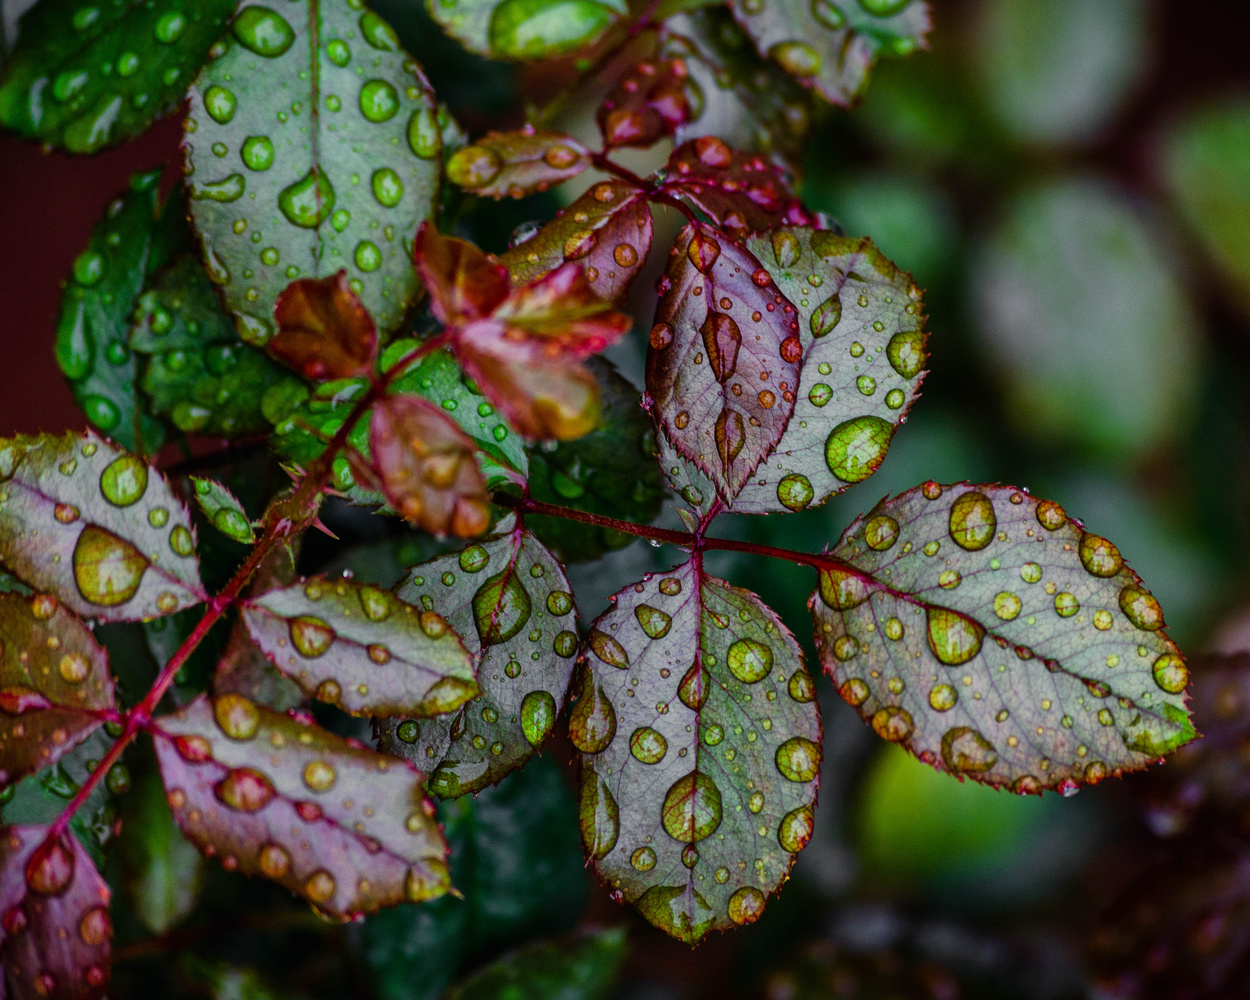 Rain water drops on beautiful leafs by Madhan GC